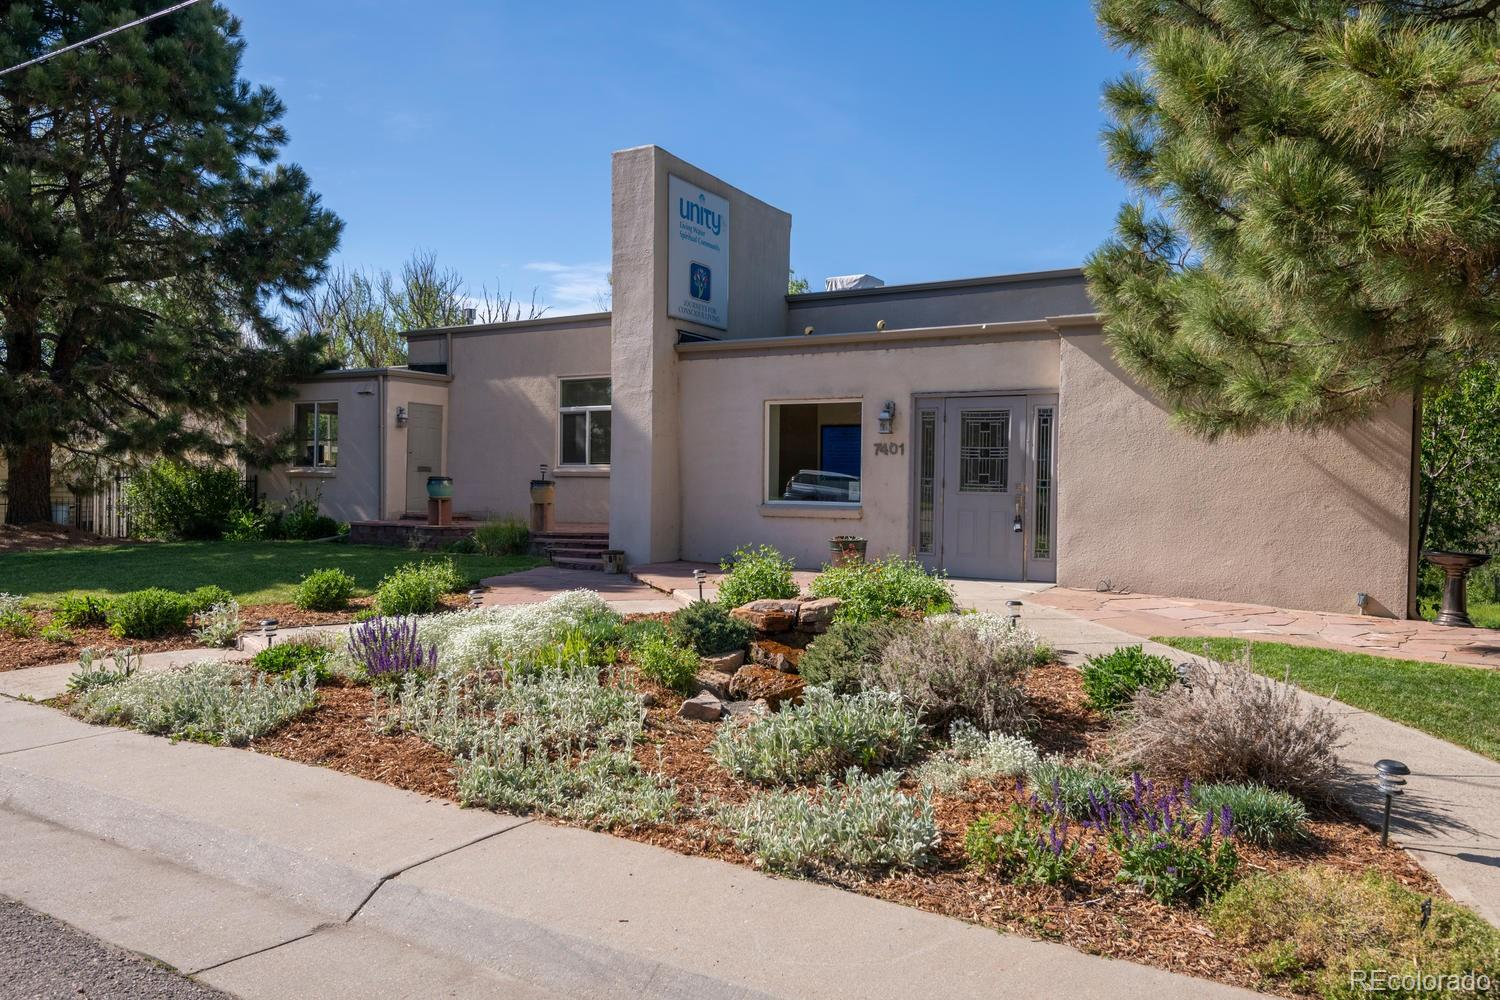 7401 W 59th Avenue Property Photo - Arvada, CO real estate listing